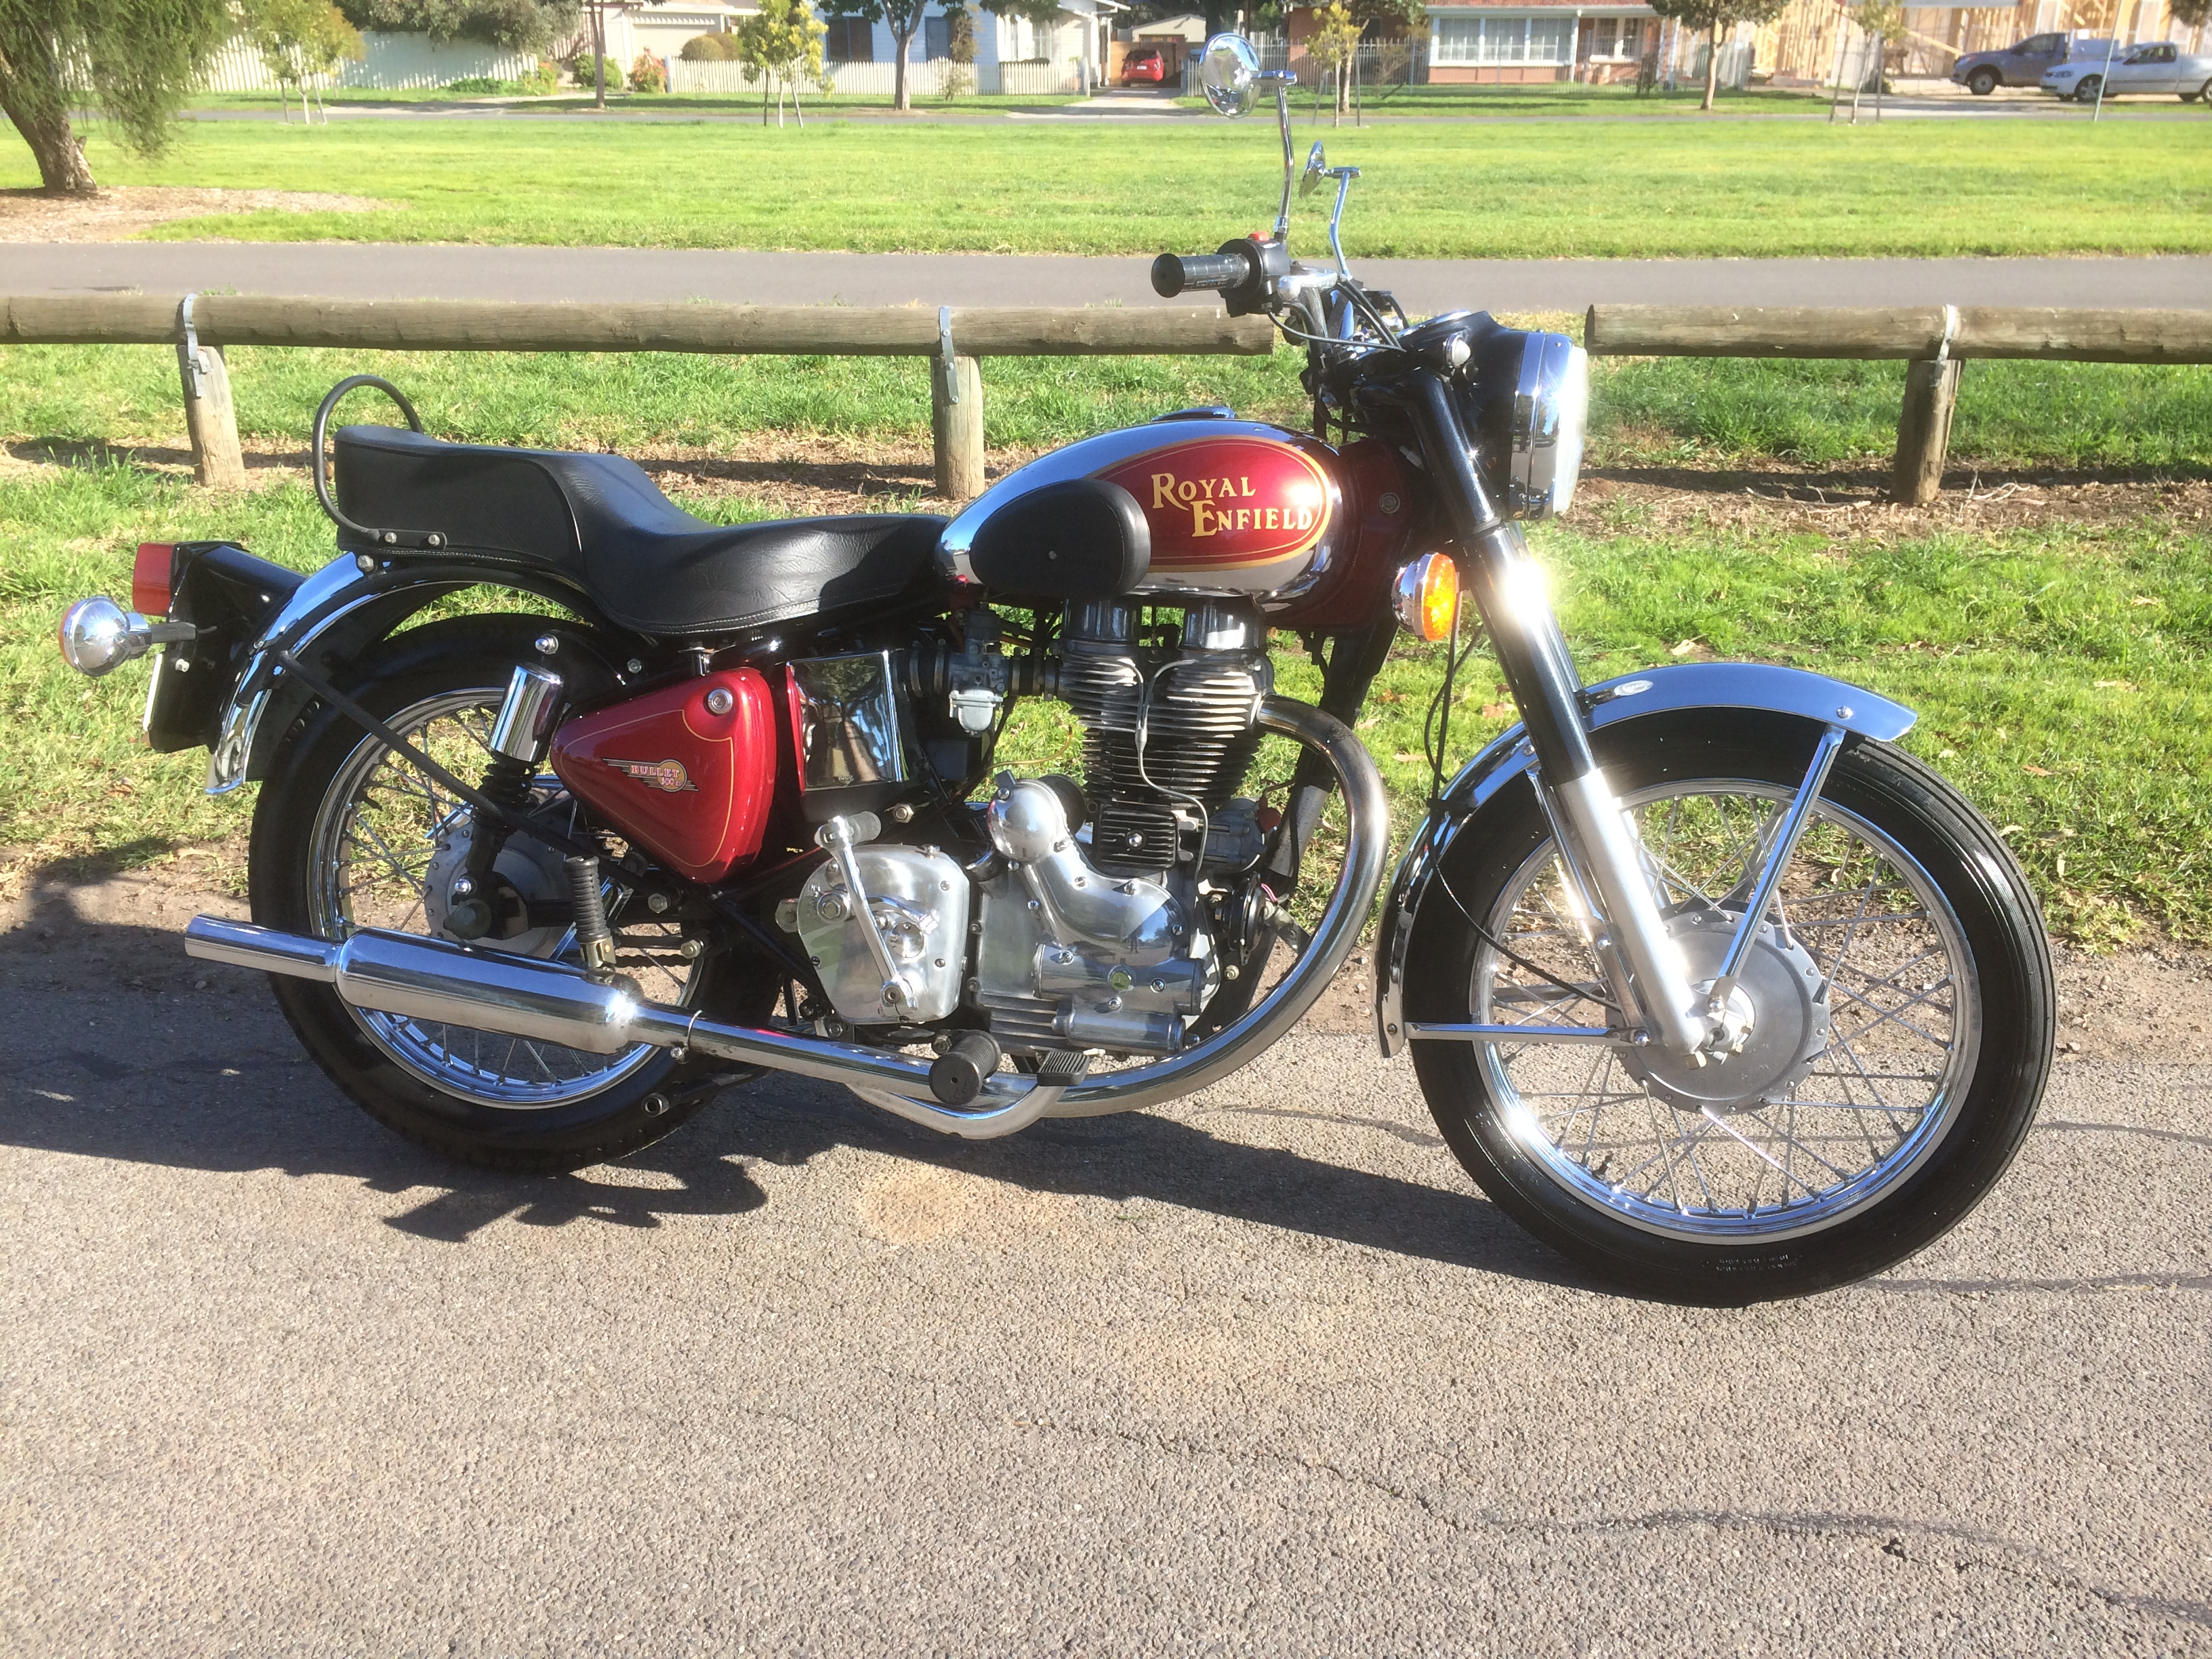 Royal Enfield Bullet 350 Army 1999 images #122840